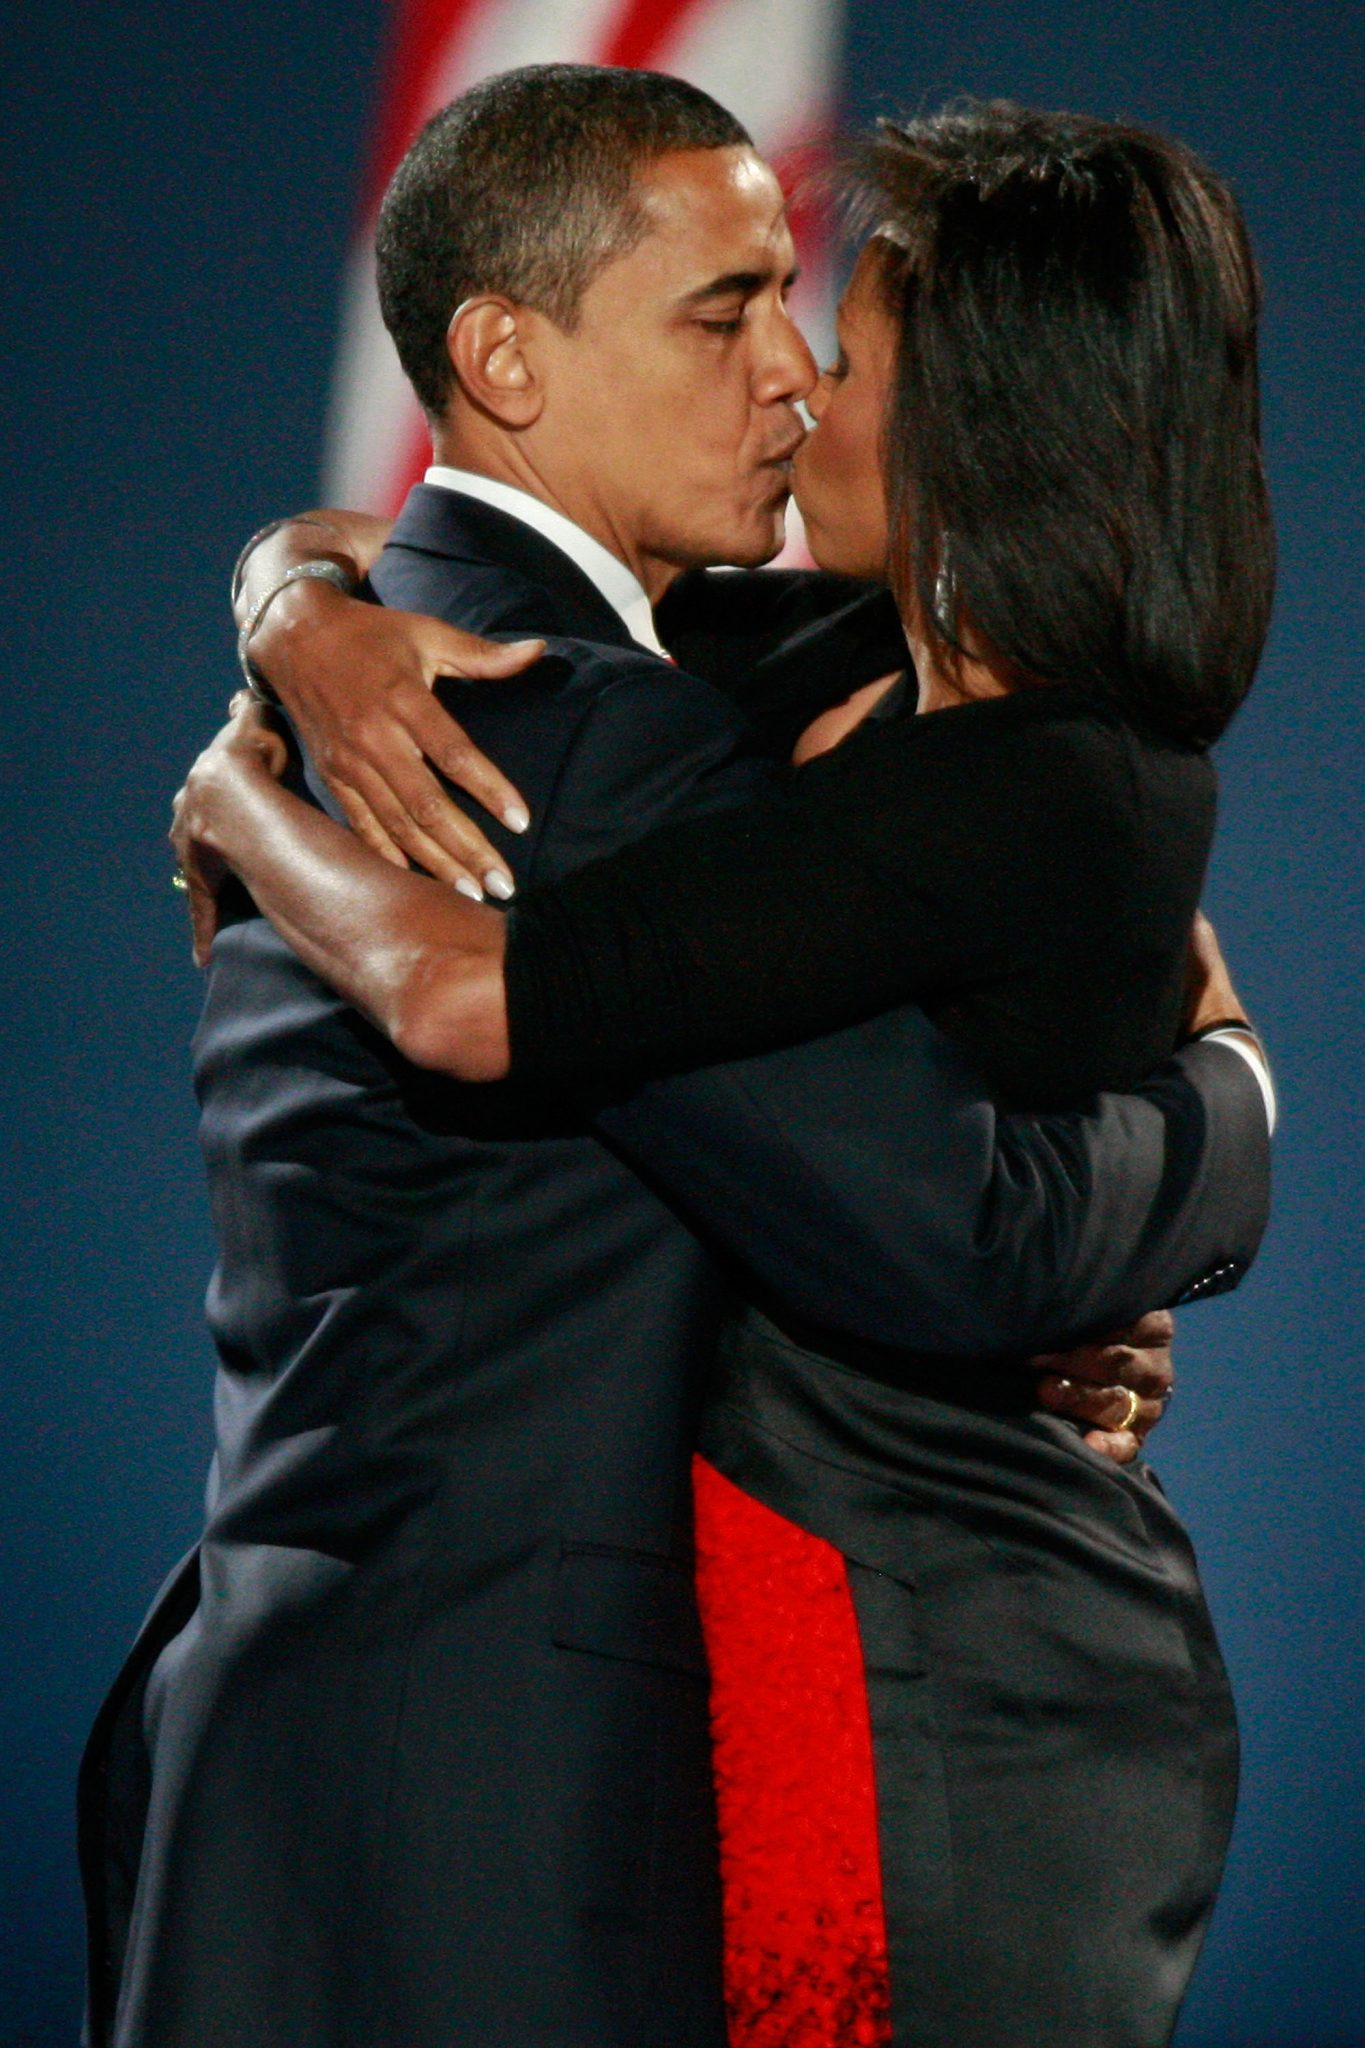 http://web.archive.org/web/20110619215218/http:/christwire.org/2011/05/barack-obama-and-david-cameron-kissing-with-tongues/